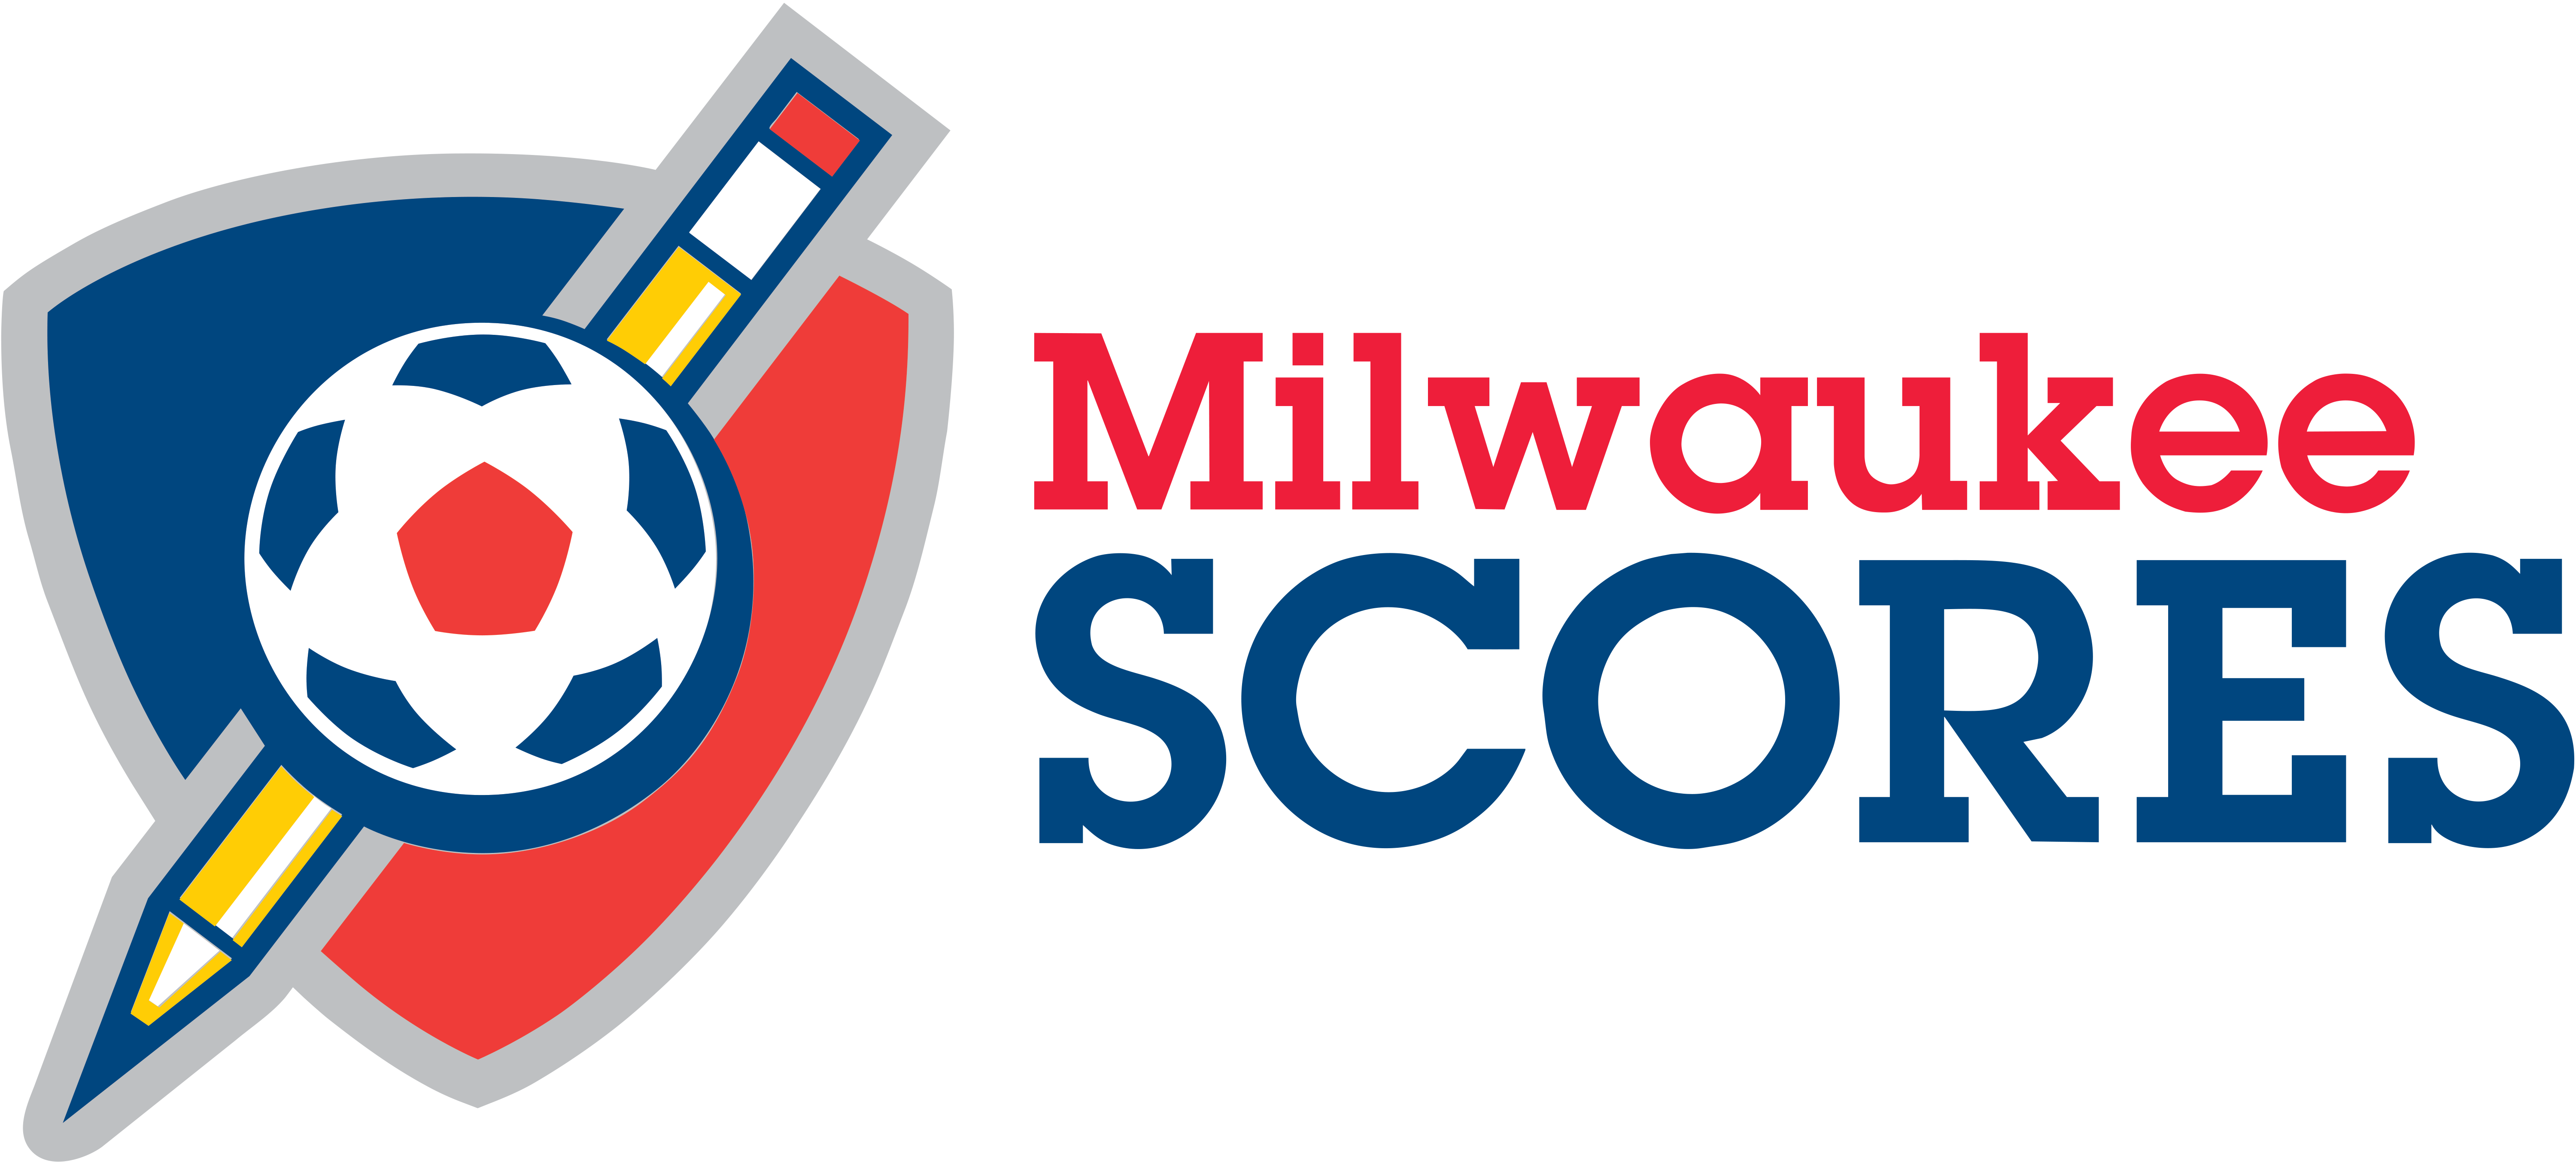 SWING FORE SCORES 2021 logo